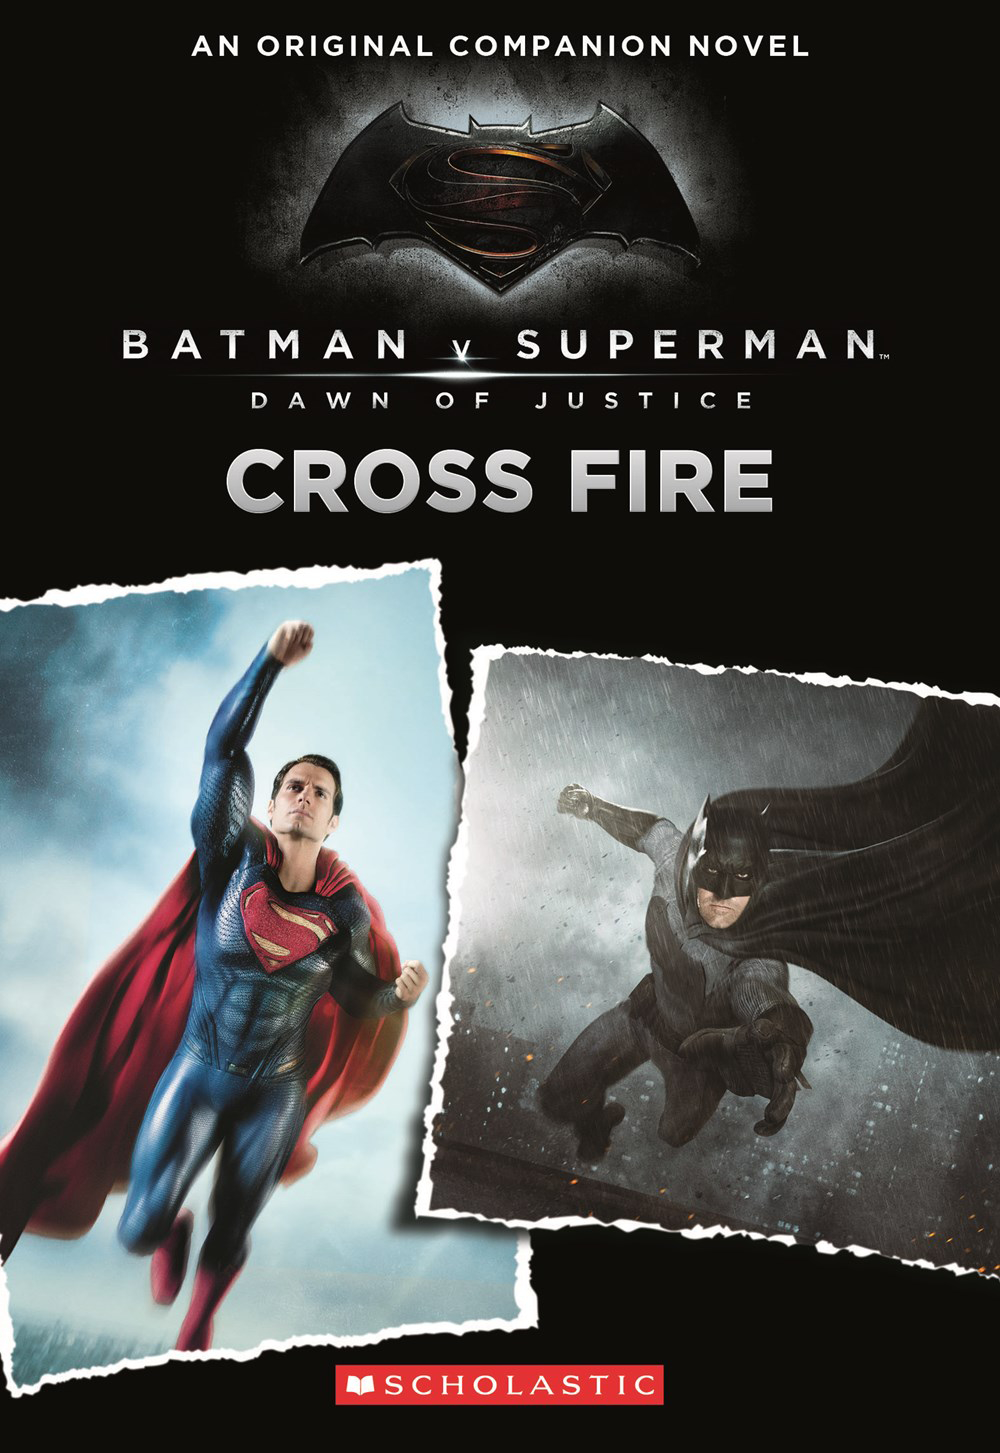 BATMAN VS SUPERMAN DOJ PREQUEL YA NOVEL CROSS FIRE